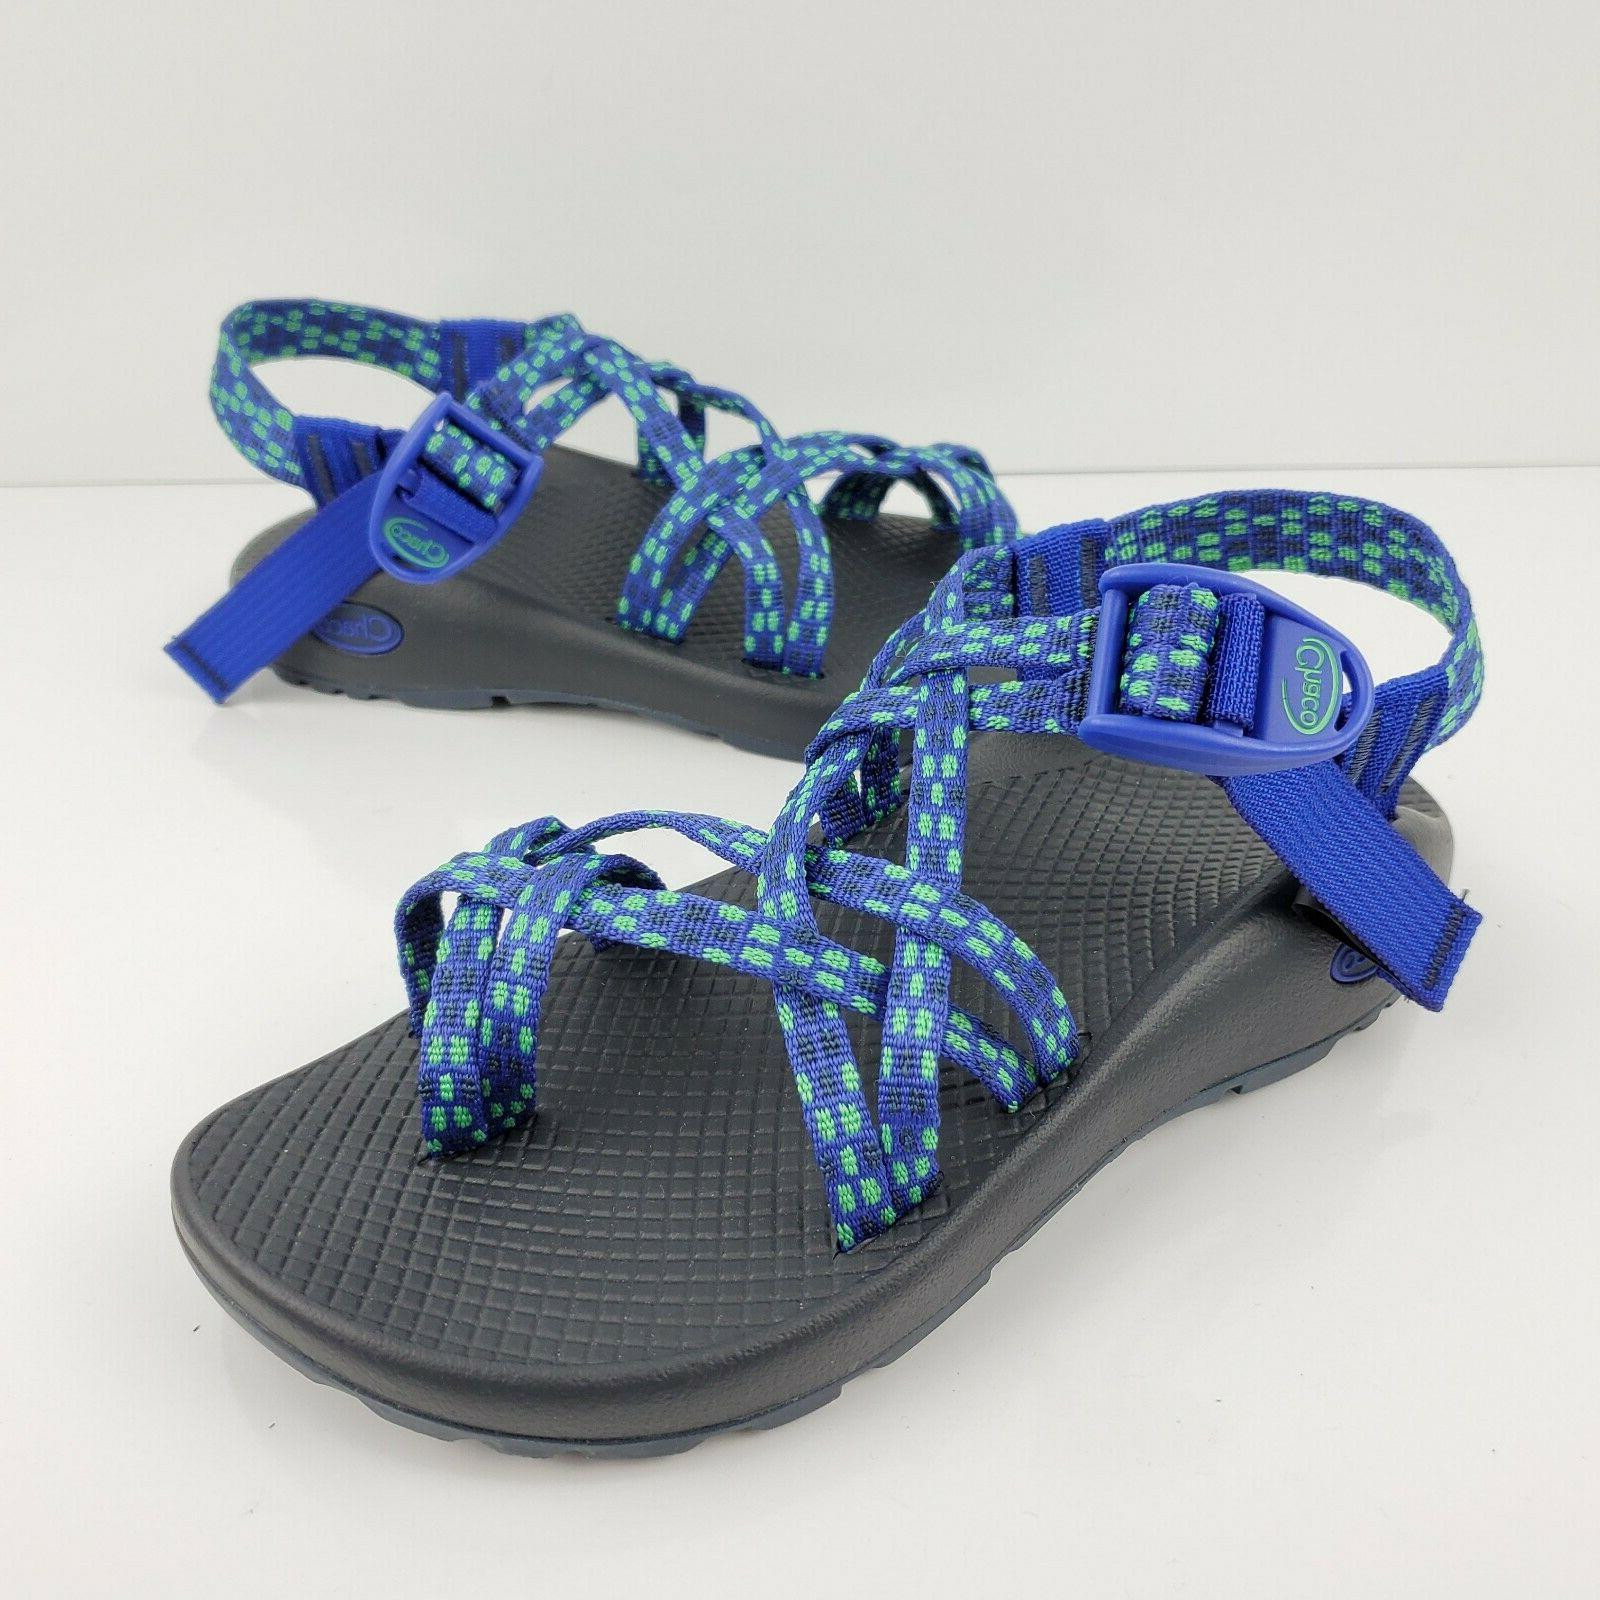 Chaco Sandals Women's size Royal Shoes NEW